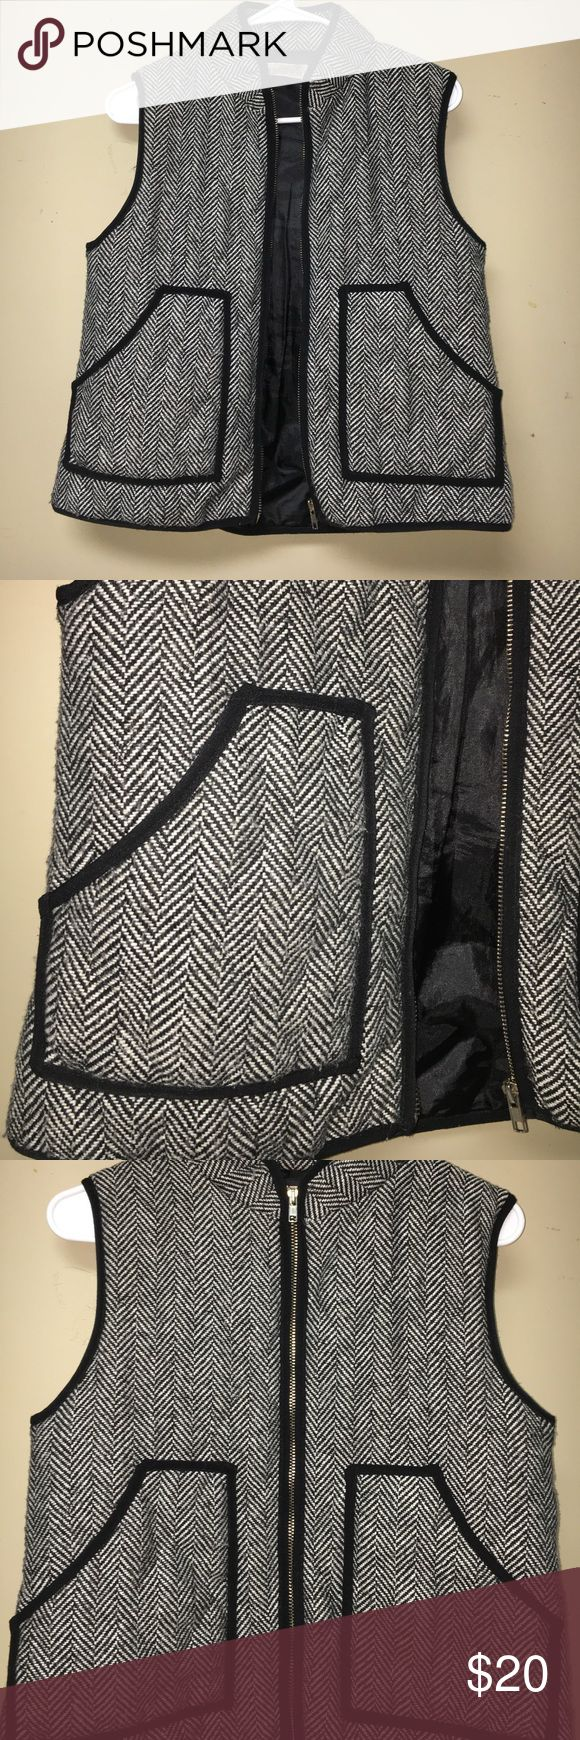 Black and White zip up vest Black and white patterned vest.  Zips up with ease and is in perfect condition. Jackets & Coats Vests